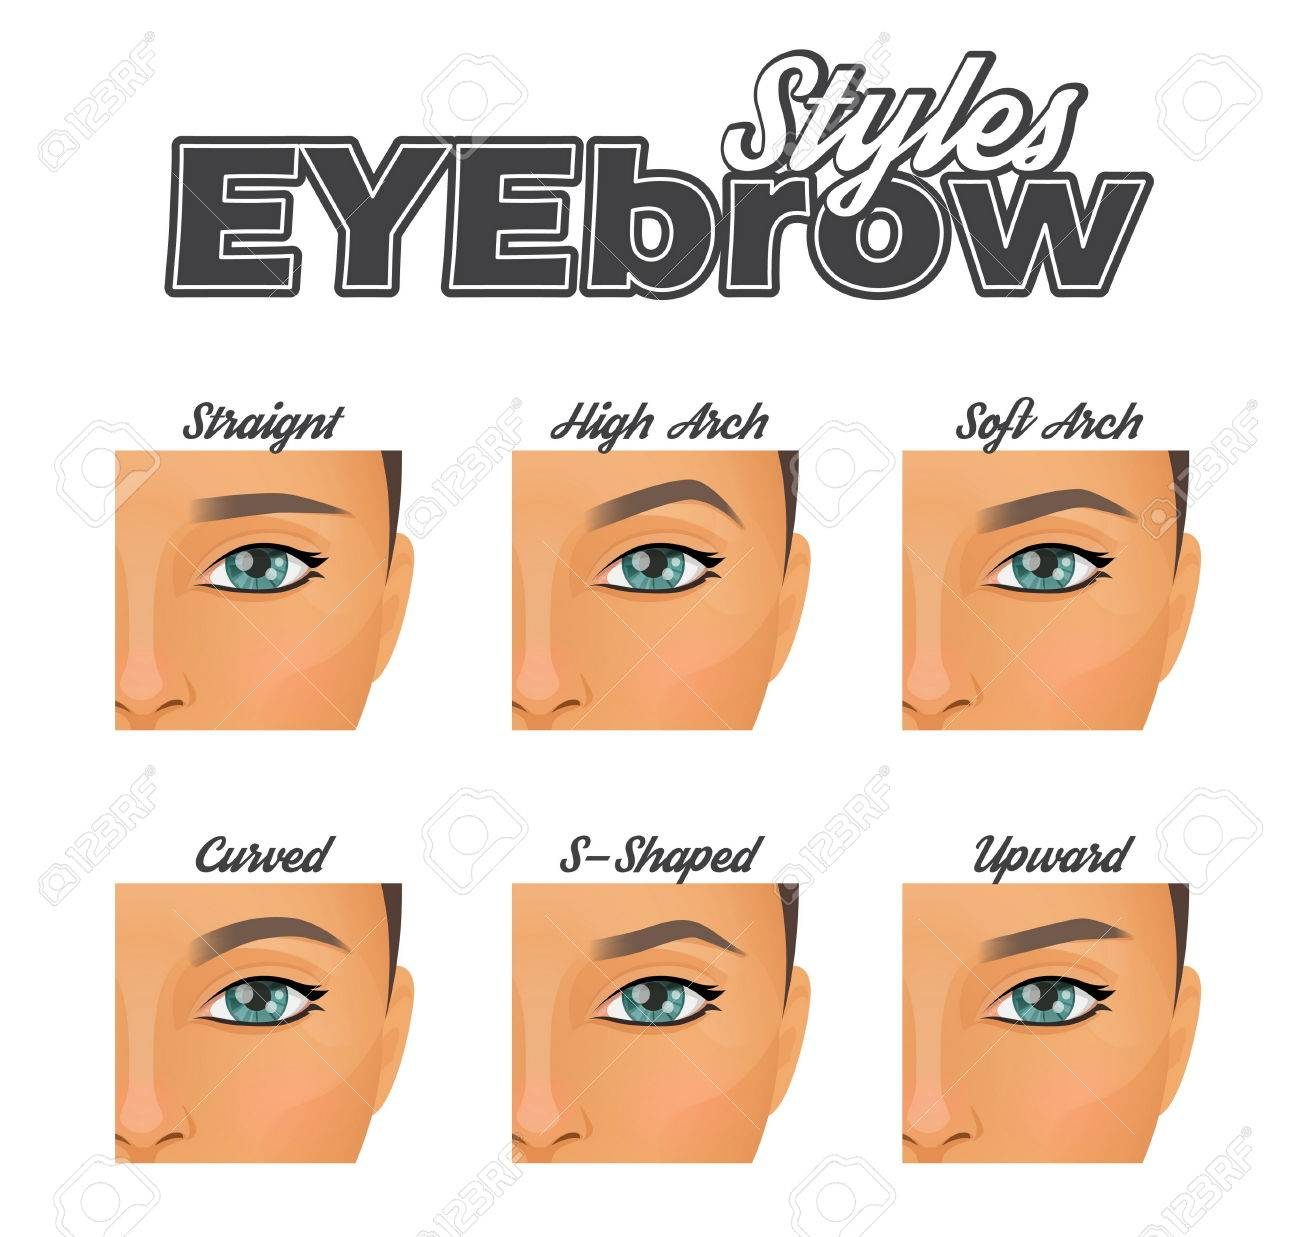 Make Up Information Chart Showing Various Eyebrow Shapes And